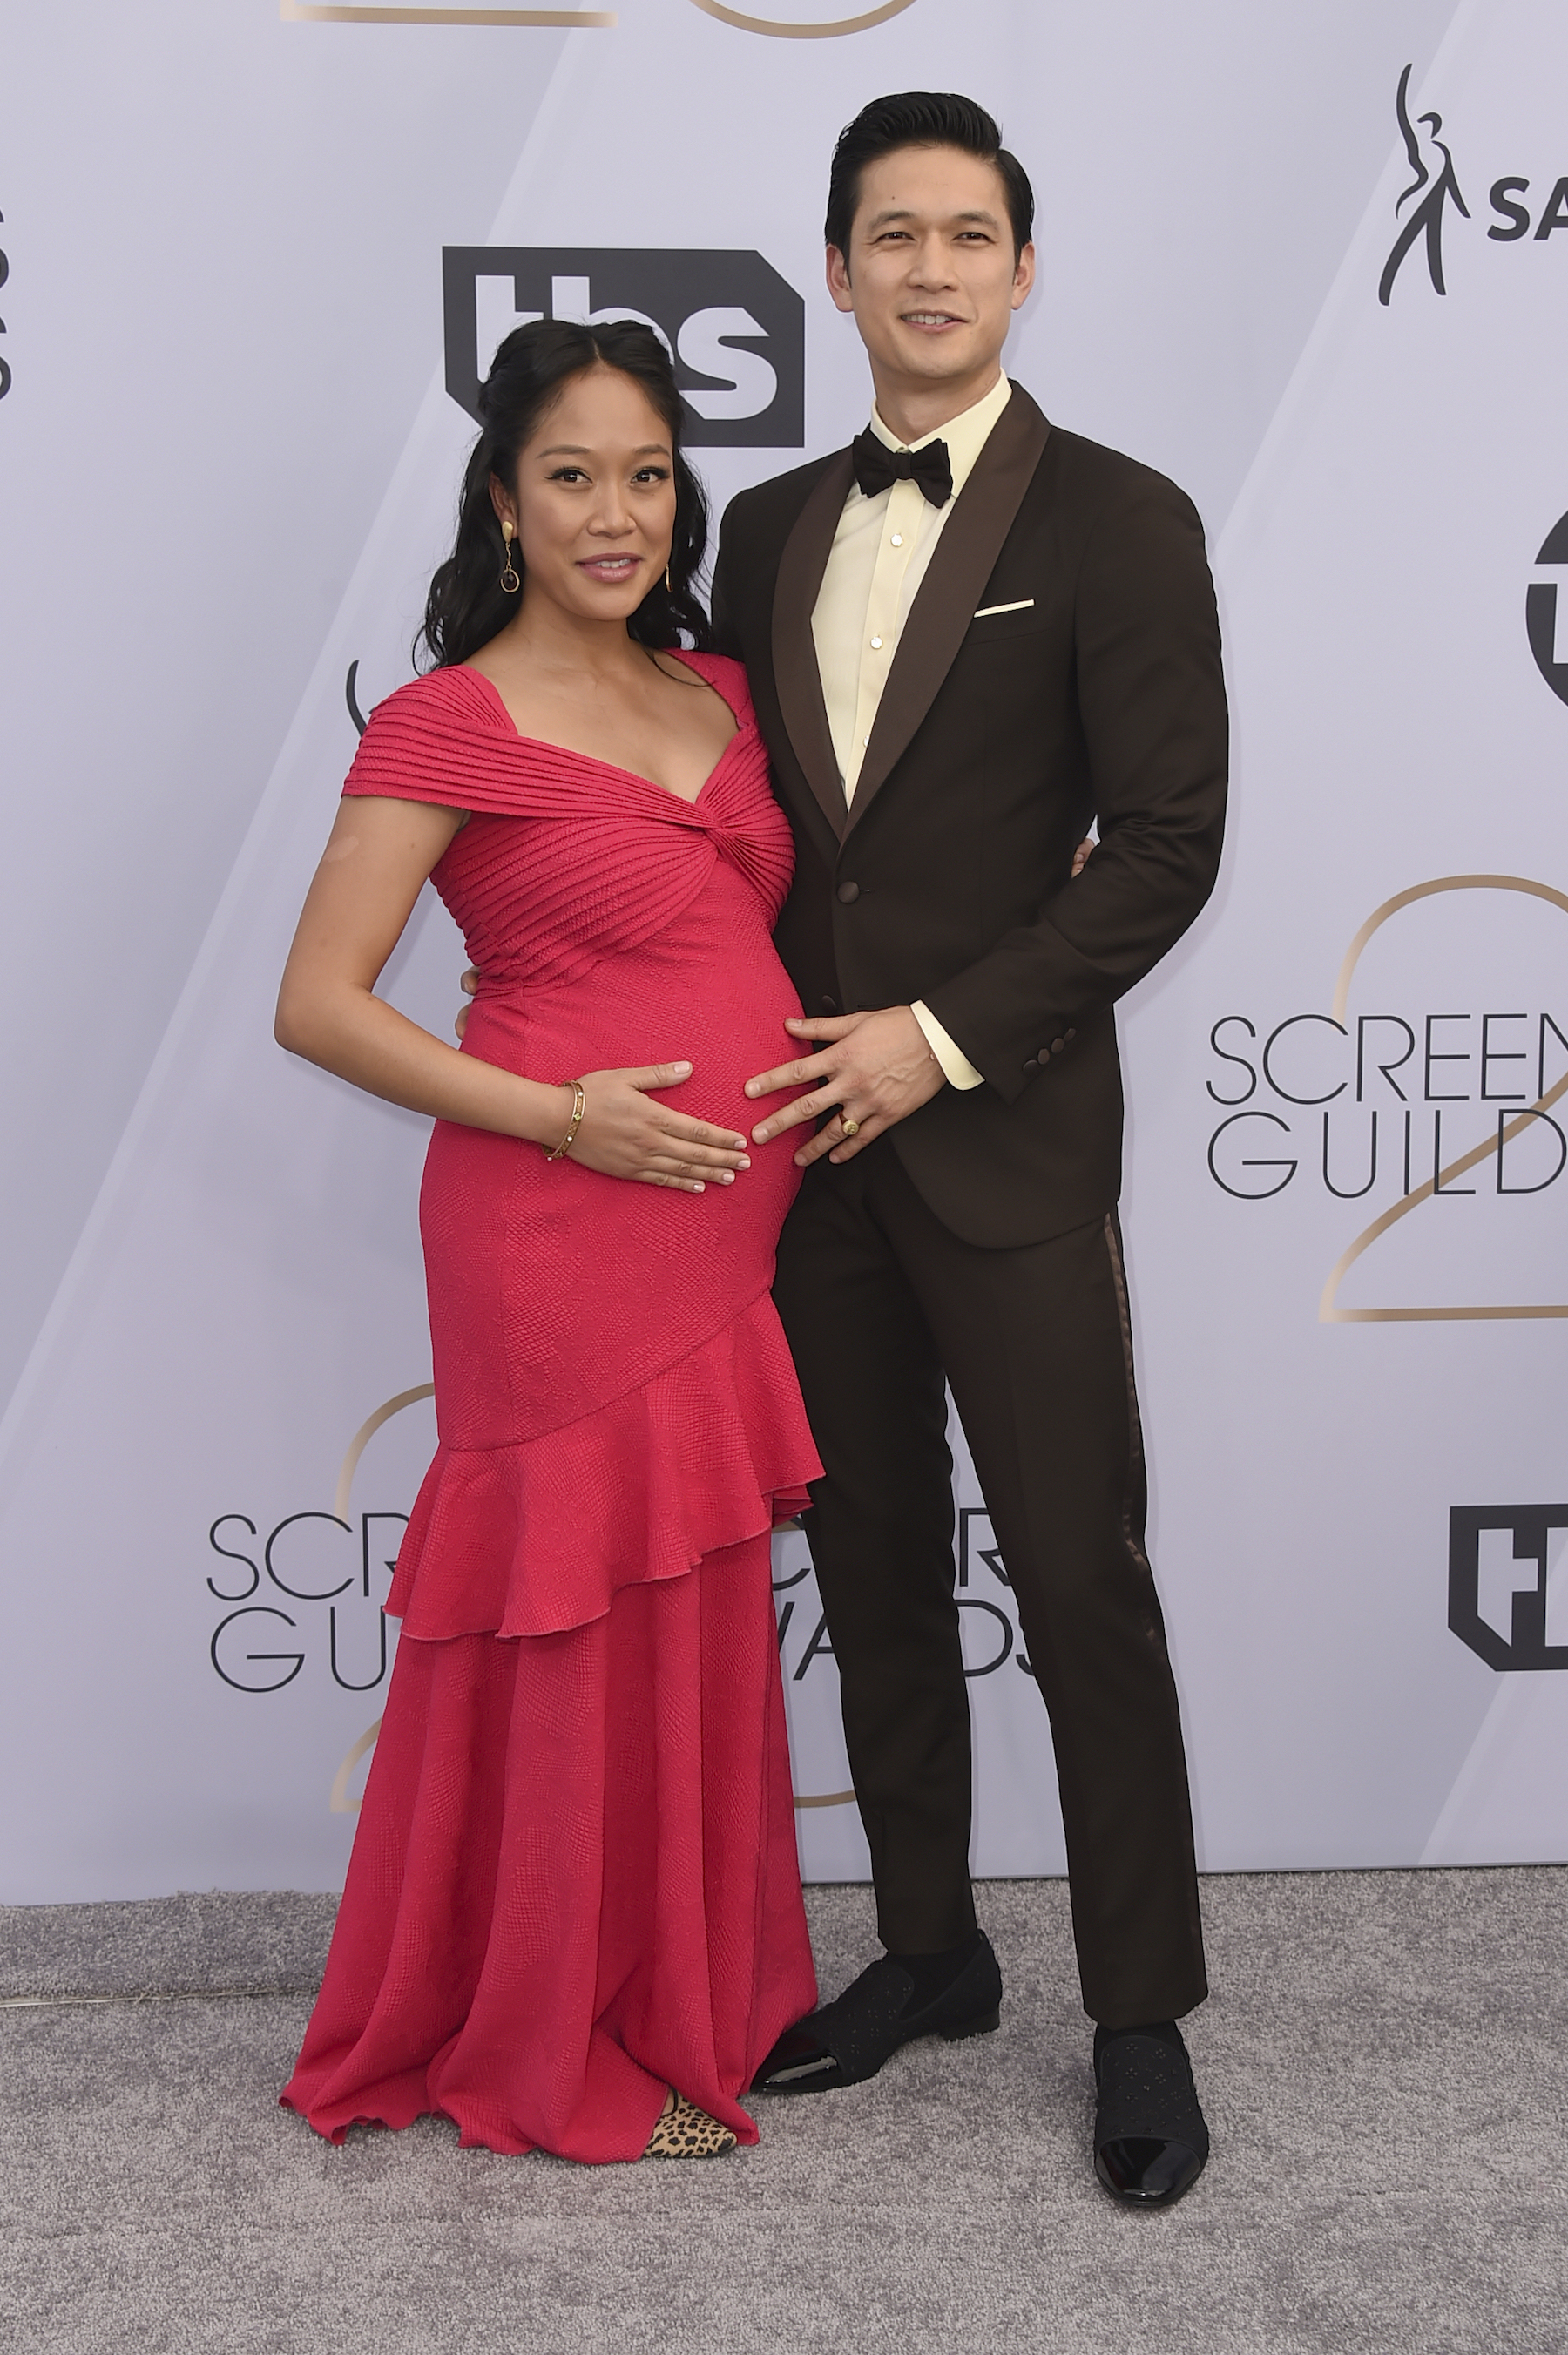 "<div class=""meta image-caption""><div class=""origin-logo origin-image ap""><span>AP</span></div><span class=""caption-text"">Shelby Rabara, left, and Harry Shum Jr. arrive at the 25th annual Screen Actors Guild Awards at the Shrine Auditorium & Expo Hall on Sunday, Jan. 27, 2019, in Los Angeles. (Jordan Strauss/Invision/AP)</span></div>"